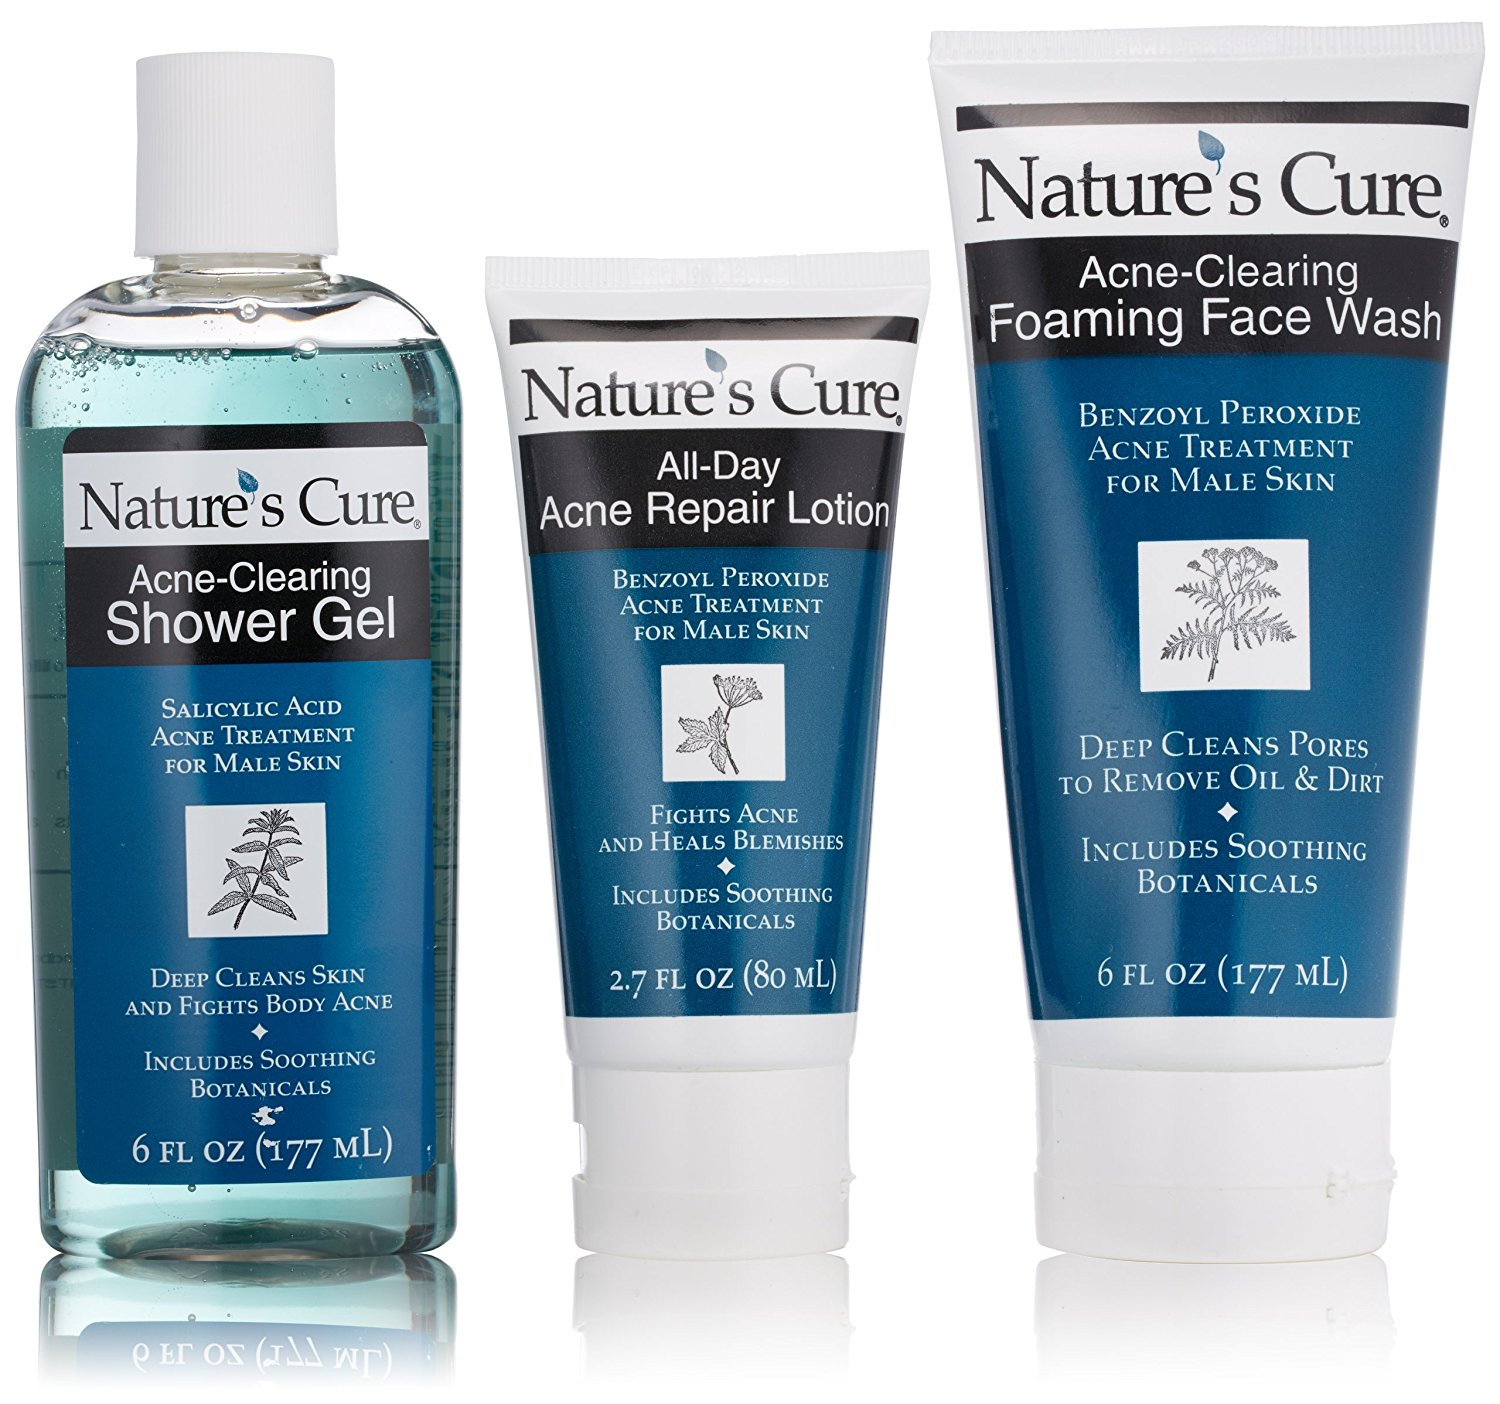 Nature's Cure Anti-Acne Face and Body Shower Kit for Male Skin